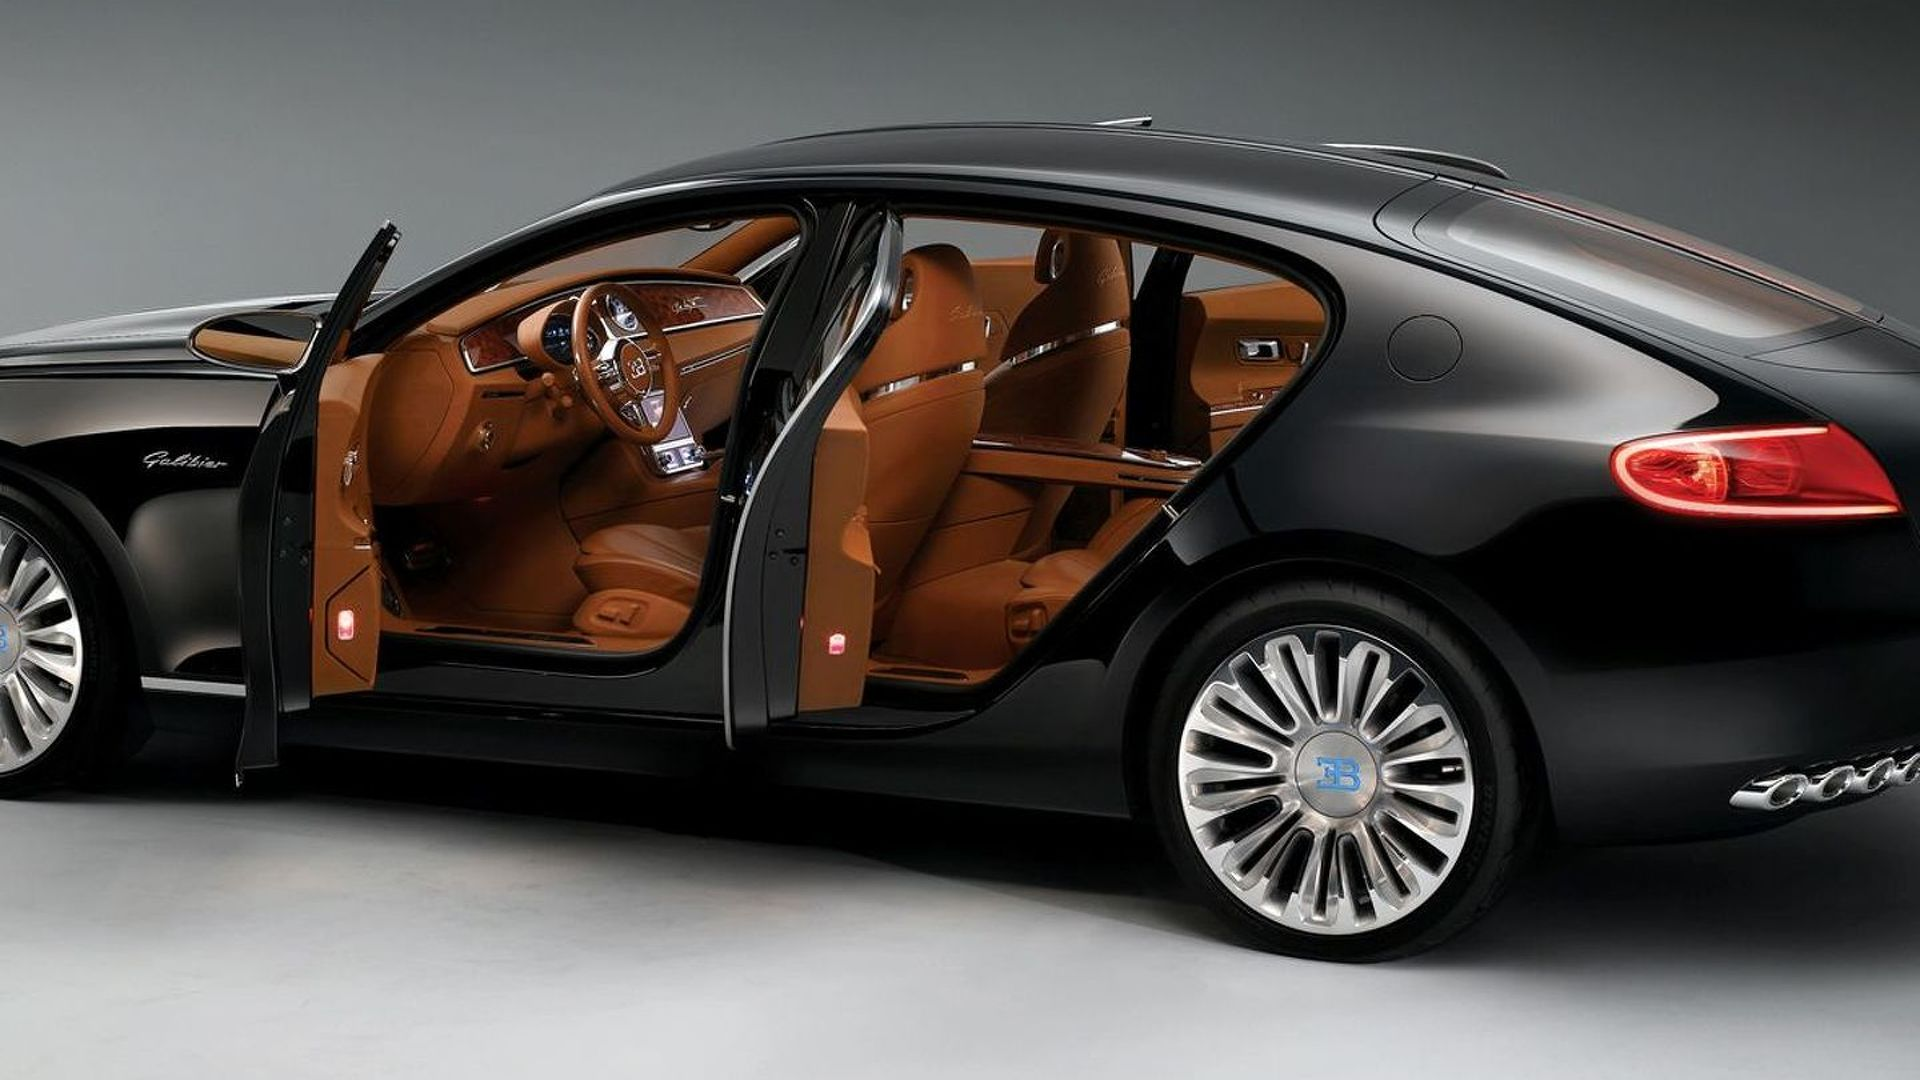 Bugatti officially rules out Super Veyron and Galibier